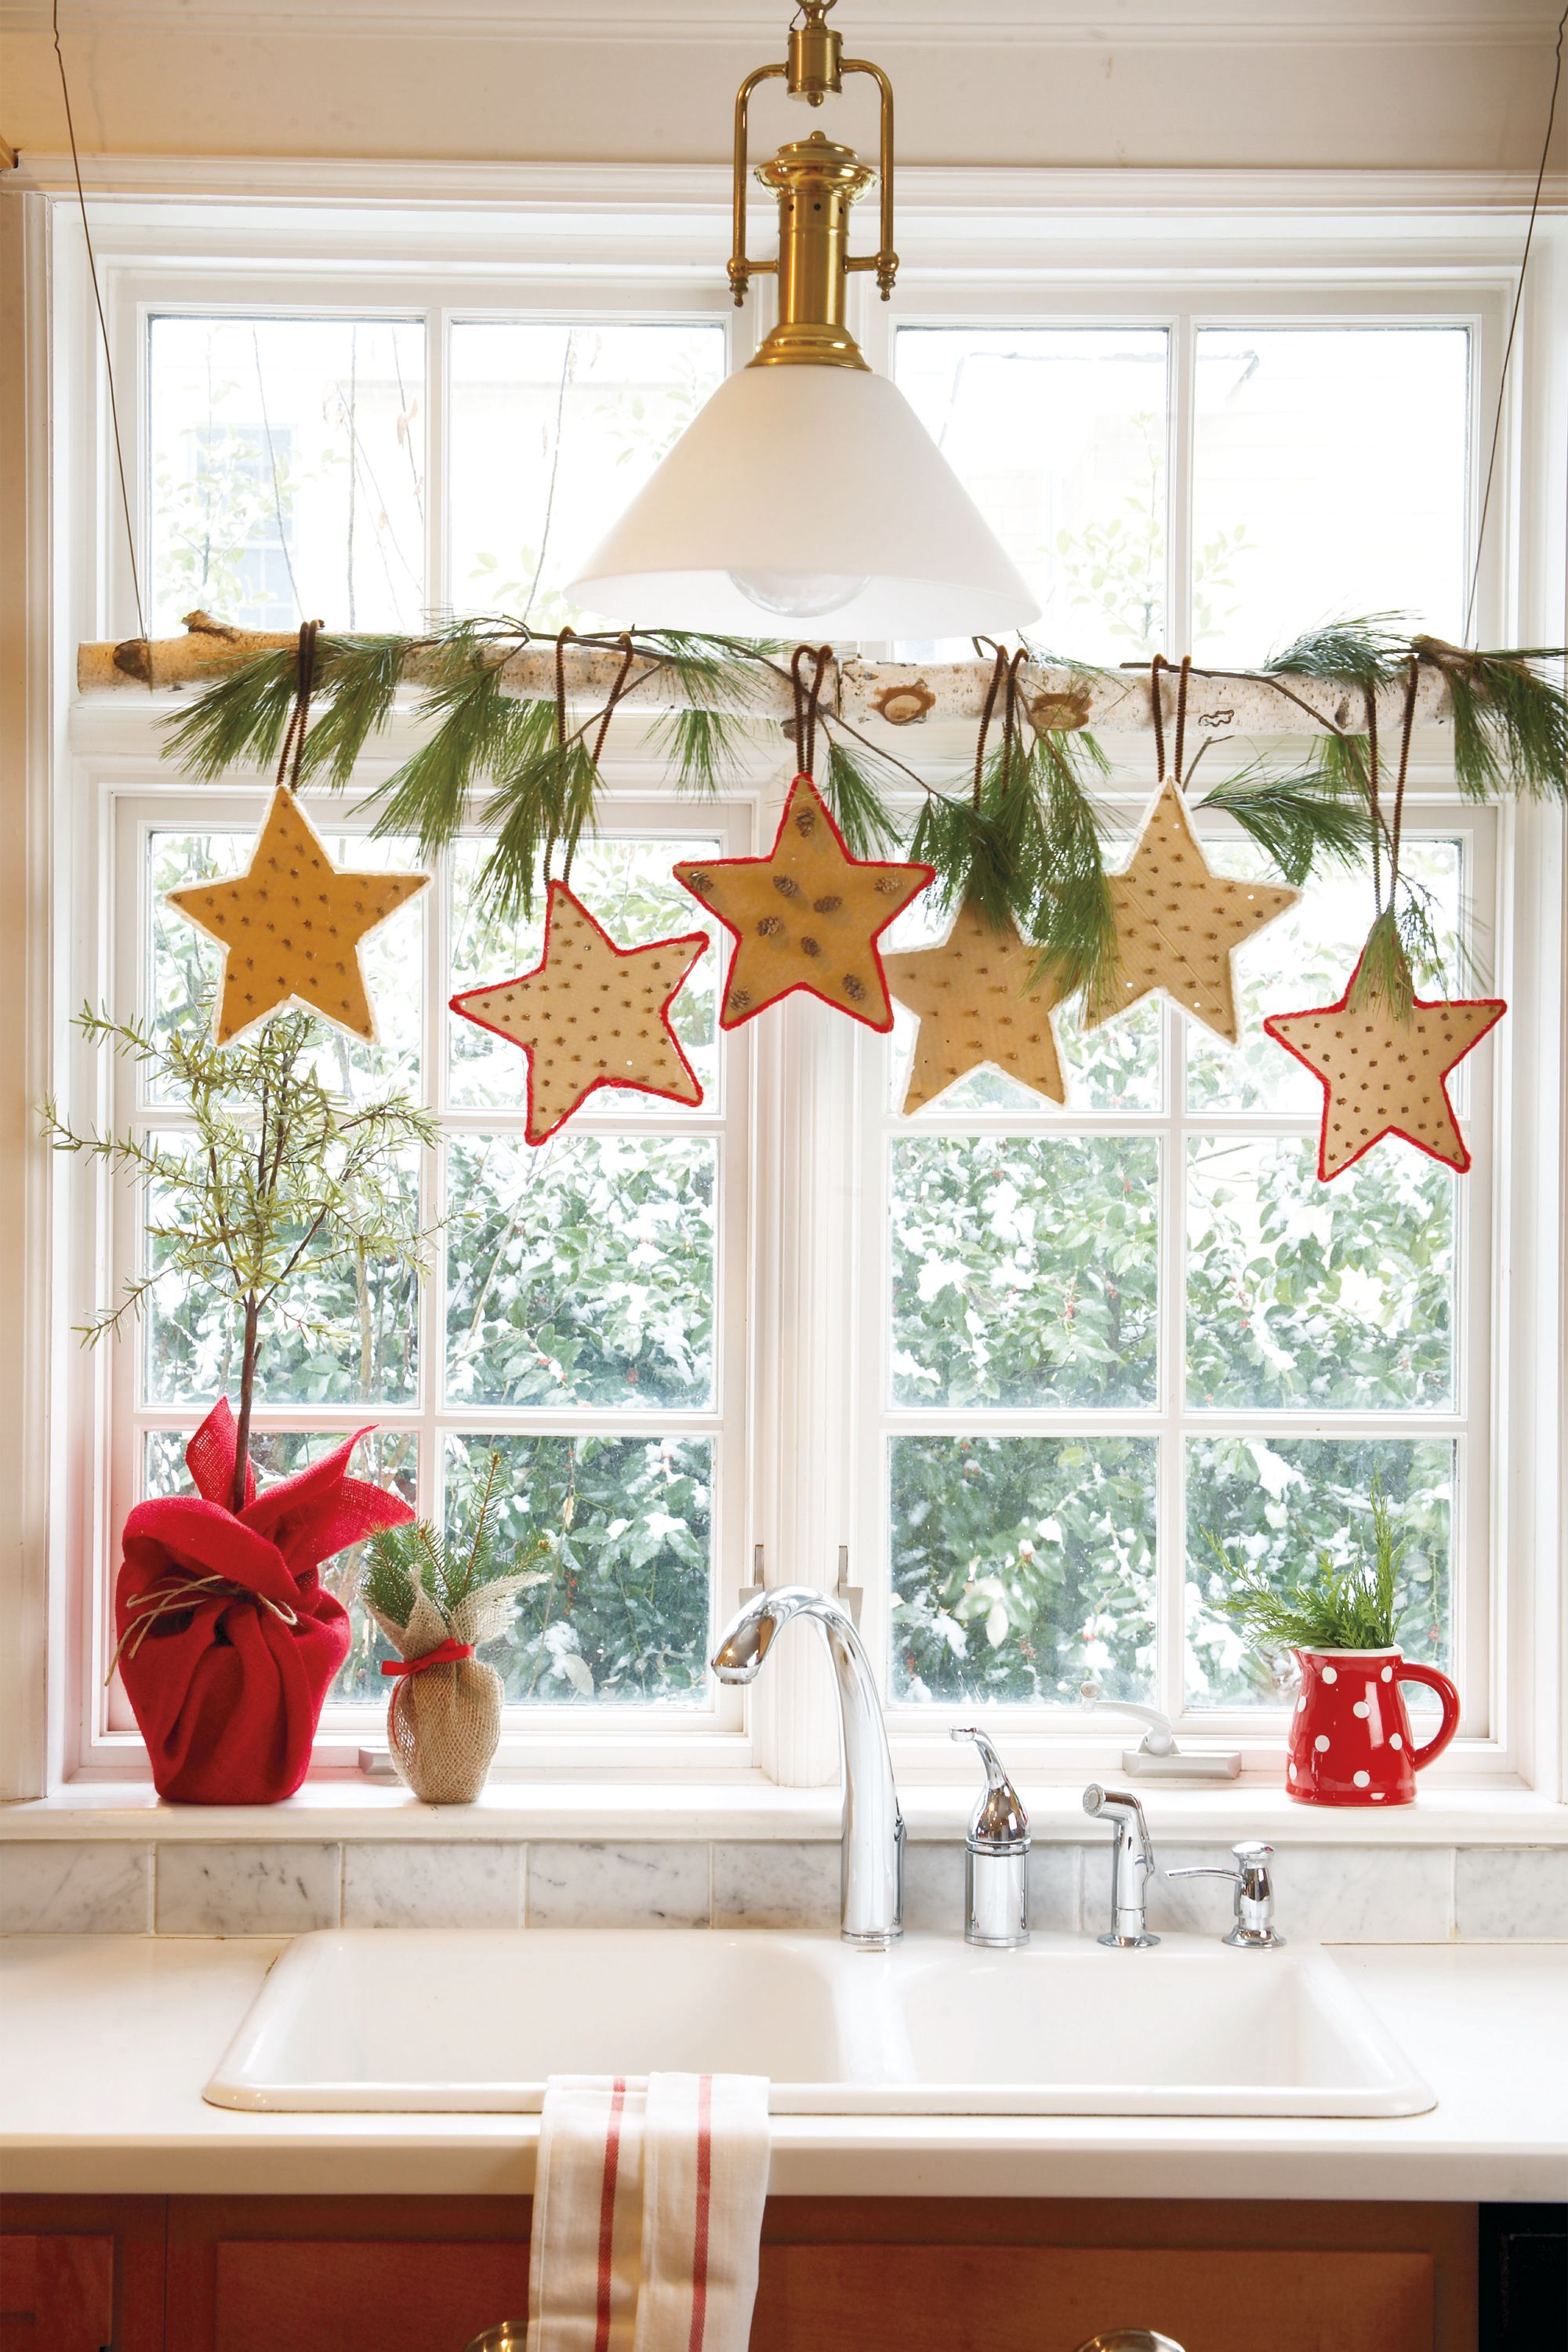 55 easy diy christmas decorations homemade ideas for holidaychristmas decorating ideas air freshener